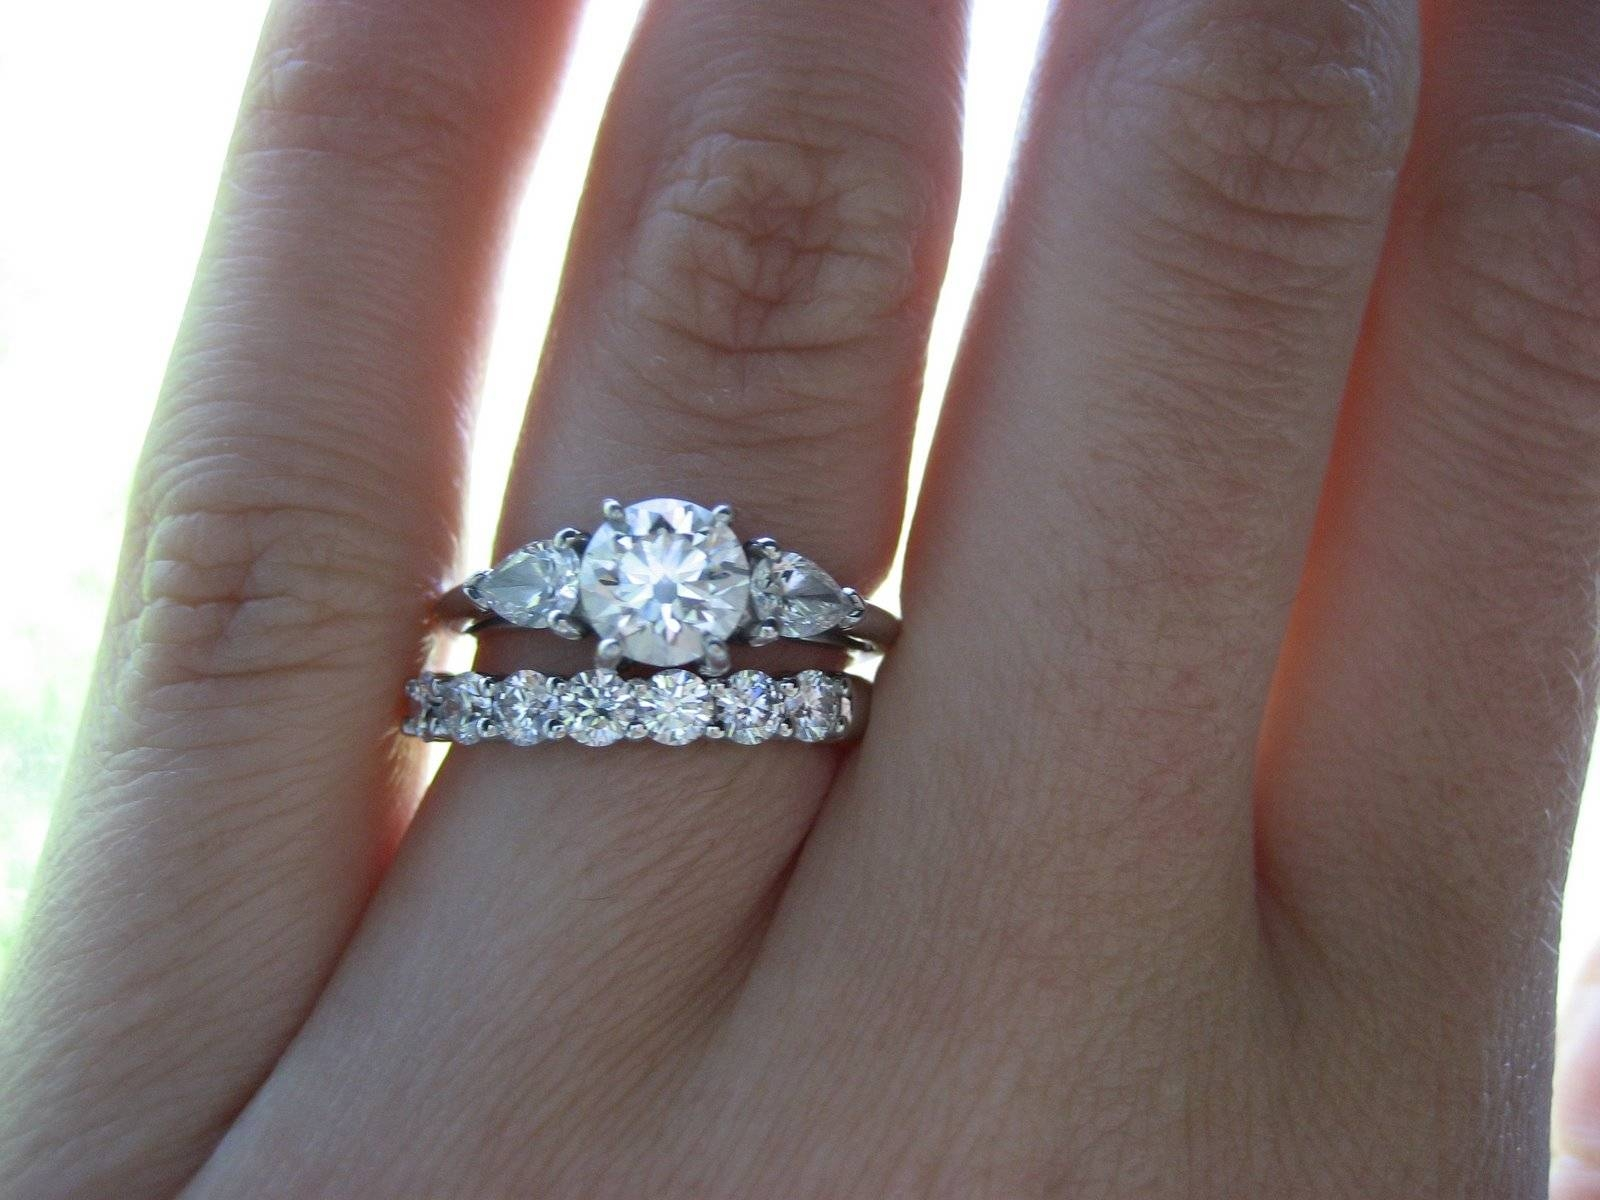 Wedding Rings : Emerald Cut Engagement Ring And Wedding Band Intended For Wedding Engagement Bands (View 5 of 15)